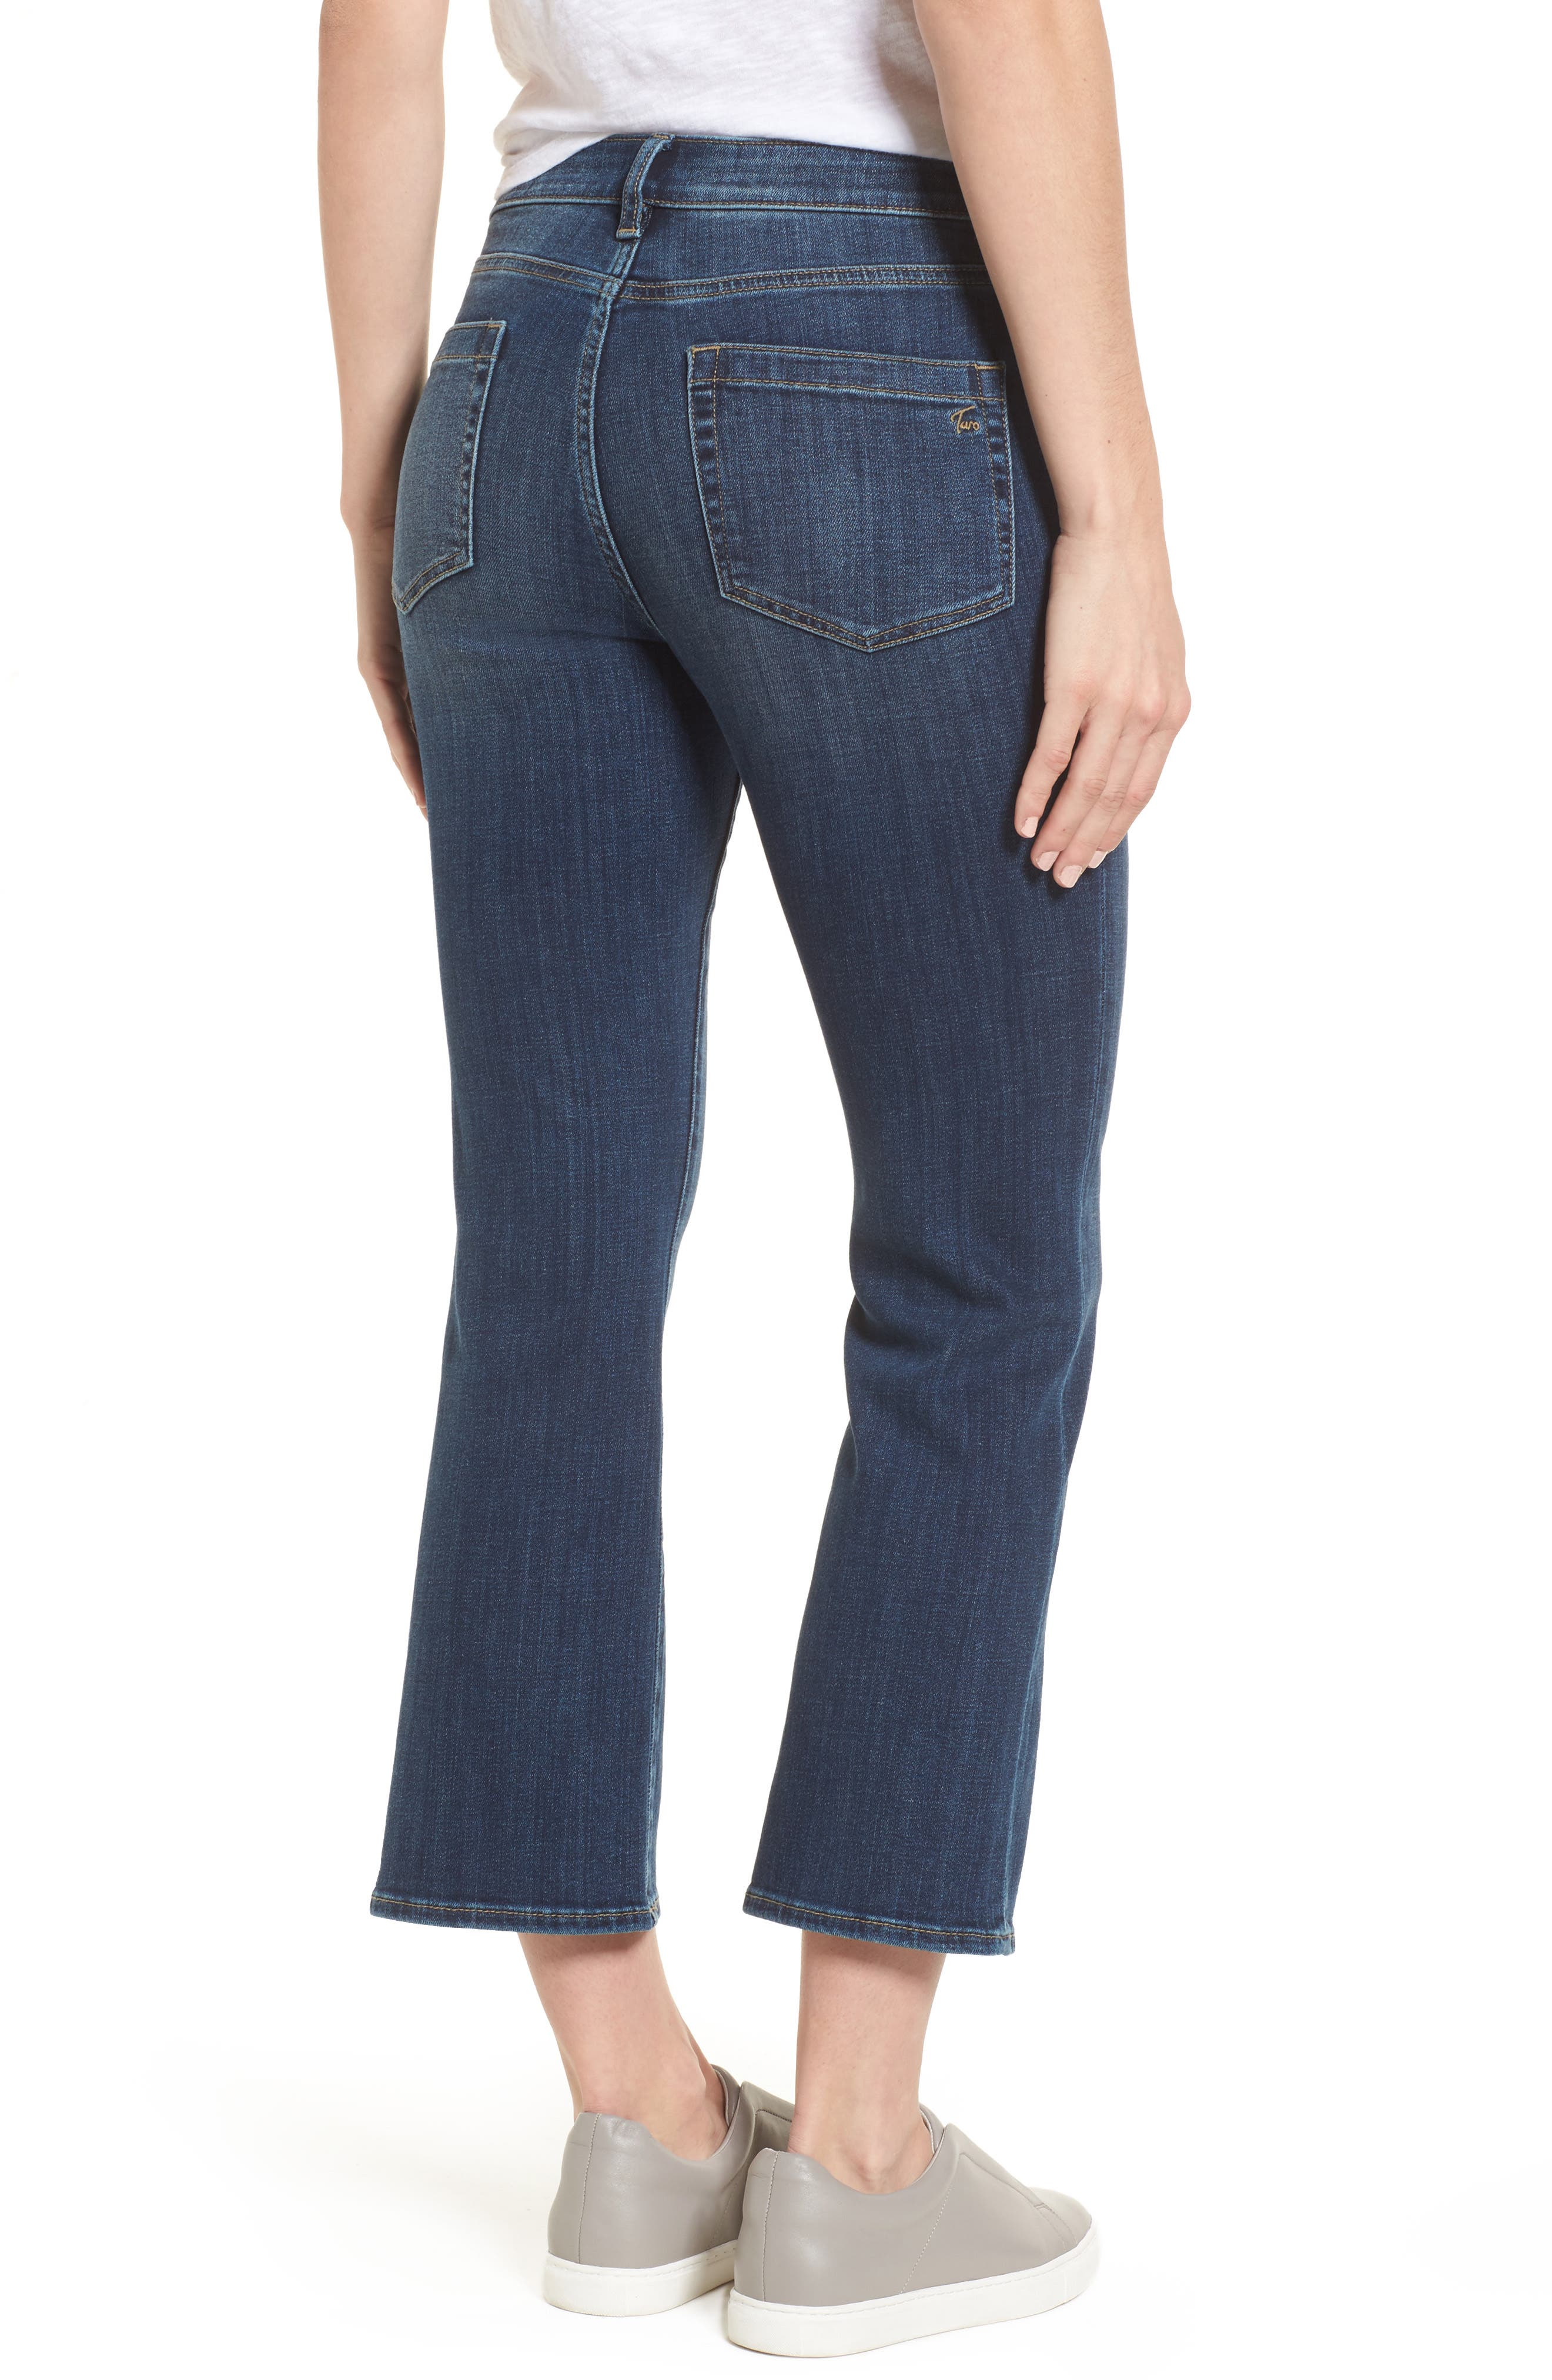 Two by Vince Camuto Cropped Flare Jeans,                             Alternate thumbnail 2, color,                             MID VINTAGE